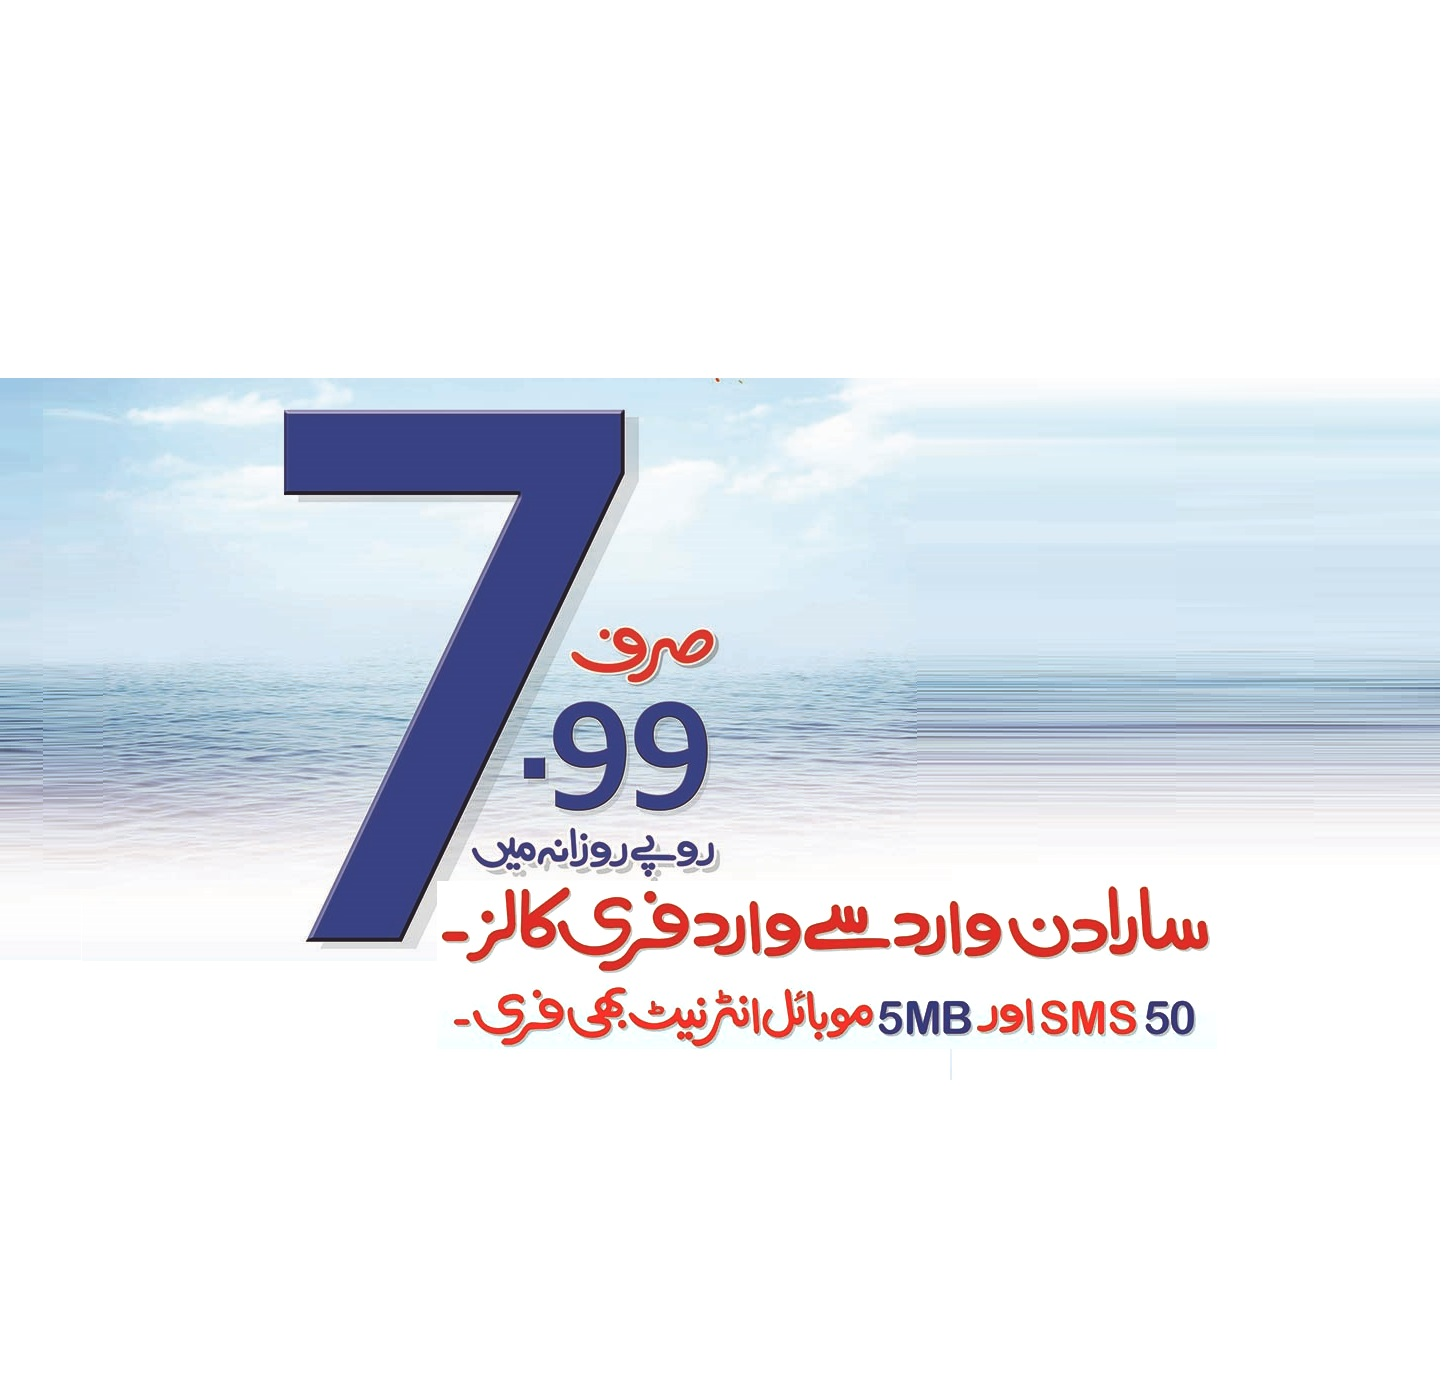 Warid Telecom launches its Karachi offer